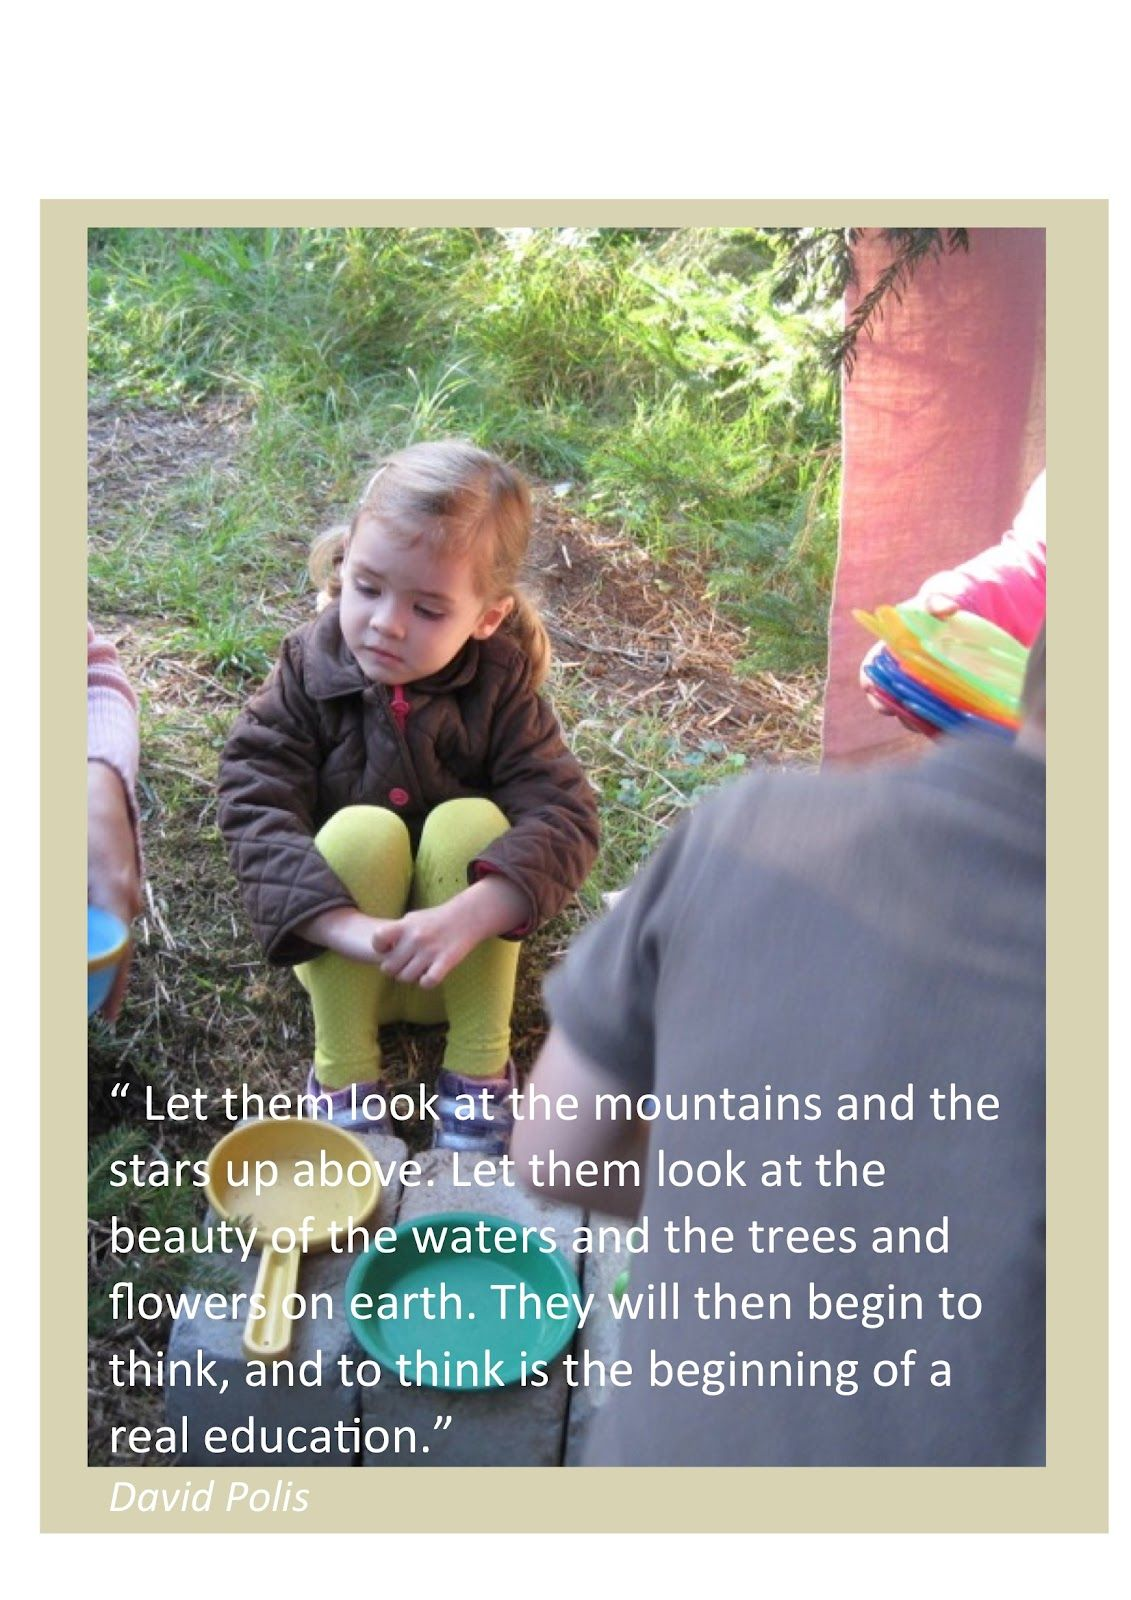 outdoor+learning+posters+PDF-1.jpg 1,131×1,600 pixels